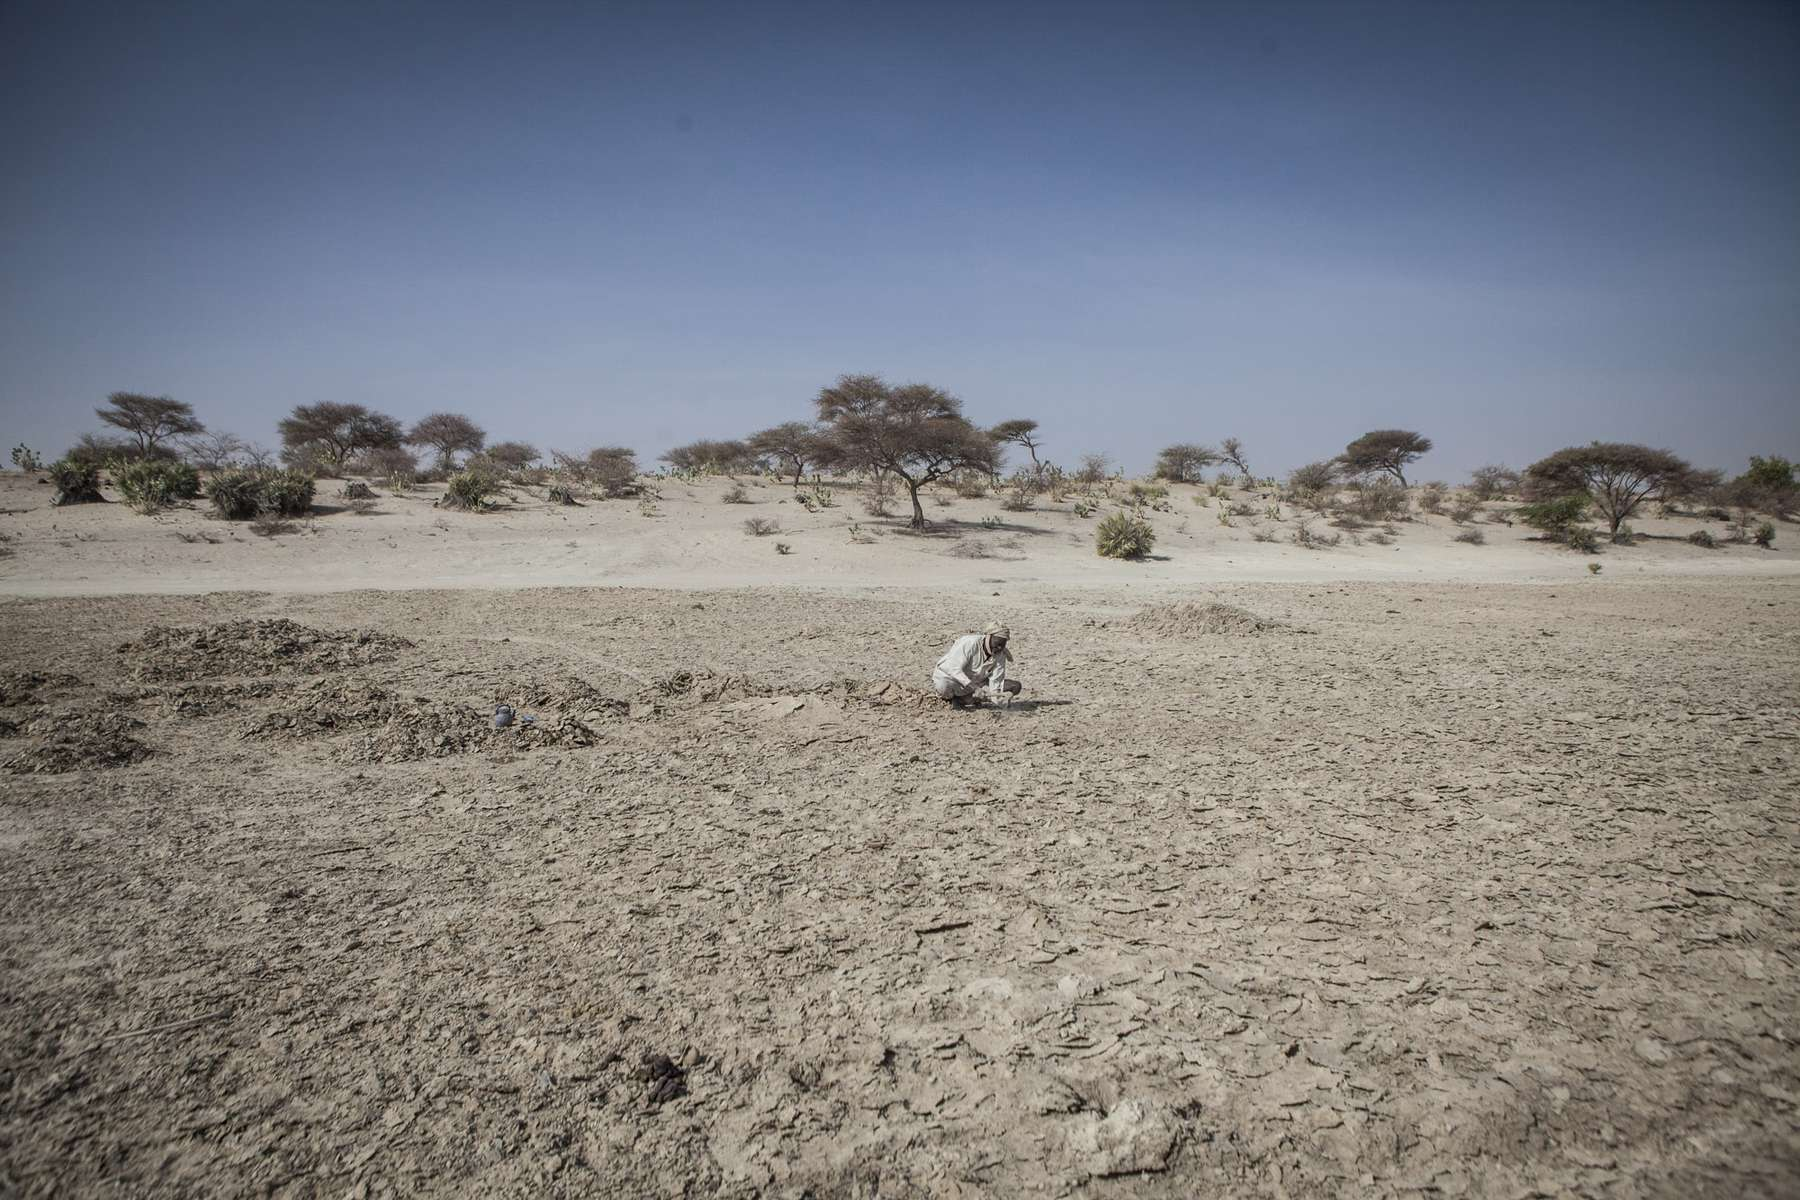 Mohammed Mboudou, digs for natron in Mayala, Chad on February 16, 2017. Mboudou has been mining for natron, a sodium based mineral found in pockets of areas around the basin, since he was 20 years old. As the water levels of the lake decrease, fields of natron are uncovered overtime. They are mined and sold to markets around the basin with Nigeria being the largest market. Since late 2014, the route to Nigeria has been cut off due to insecurity severely affecting the local market and incomes of the fishermen, farmers and miners and their ability to provide for their families.